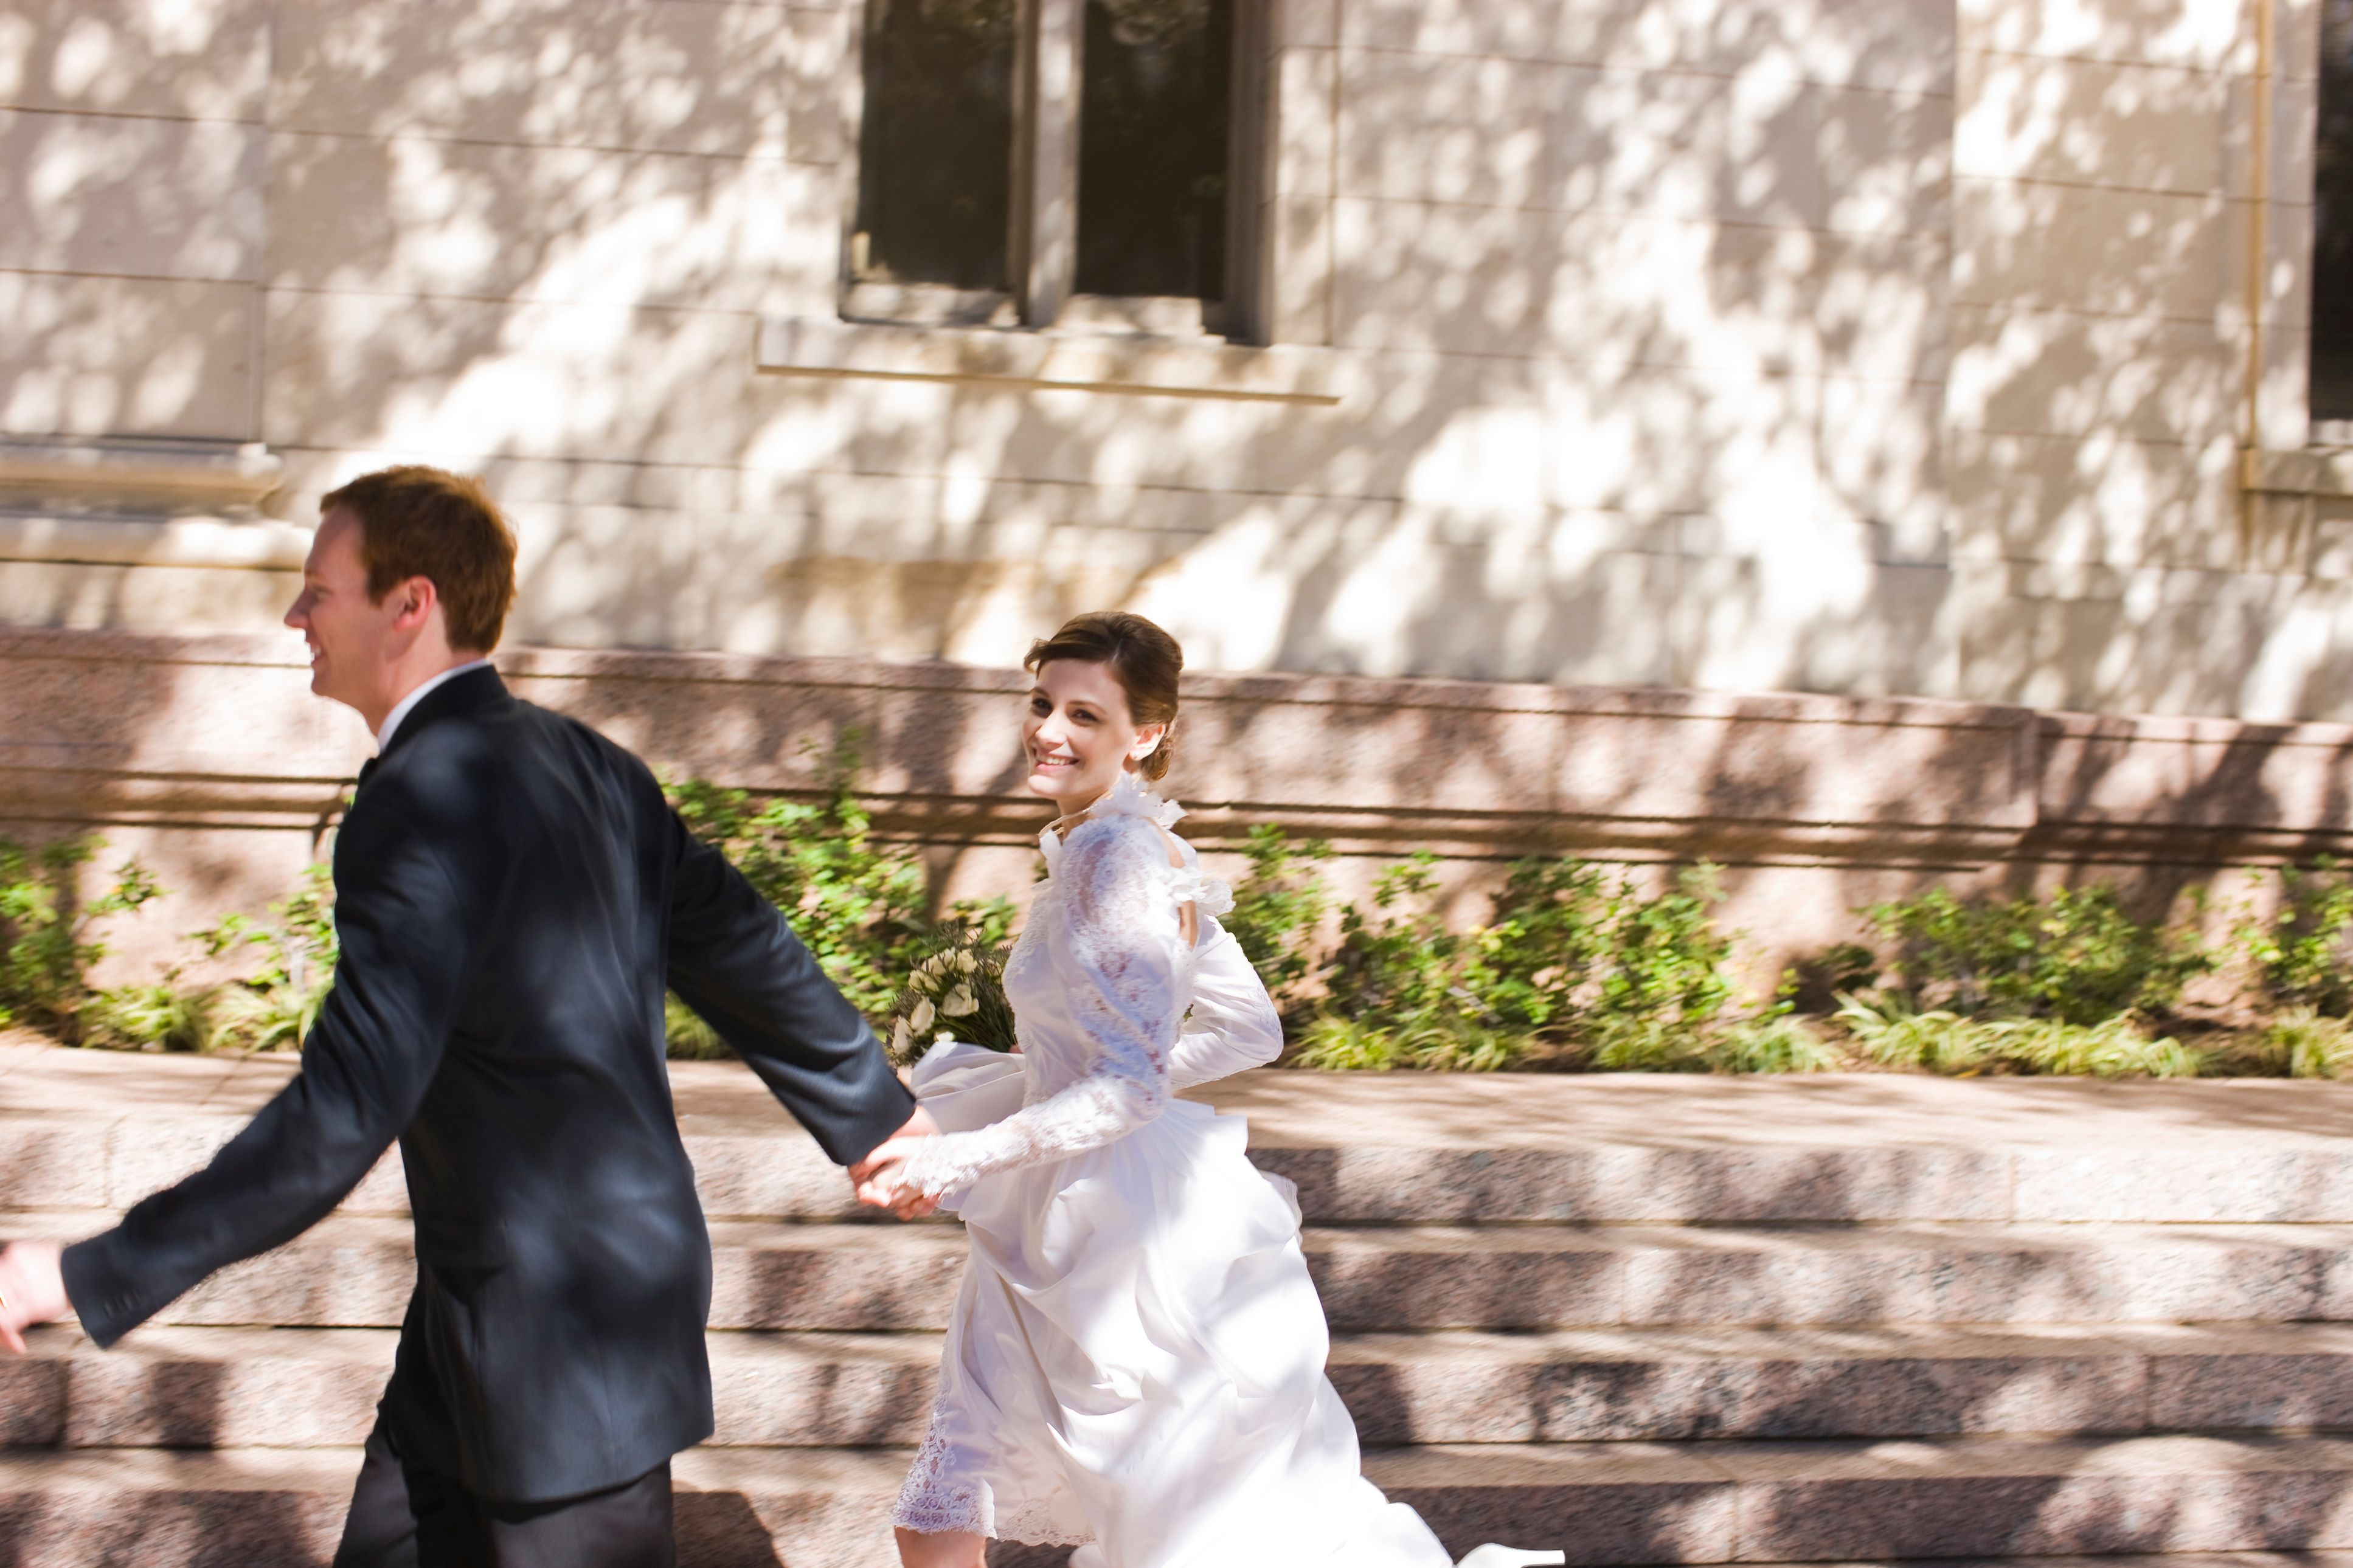 How to get a marriage license in los angeles bride and groom at courthouse aiddatafo Gallery